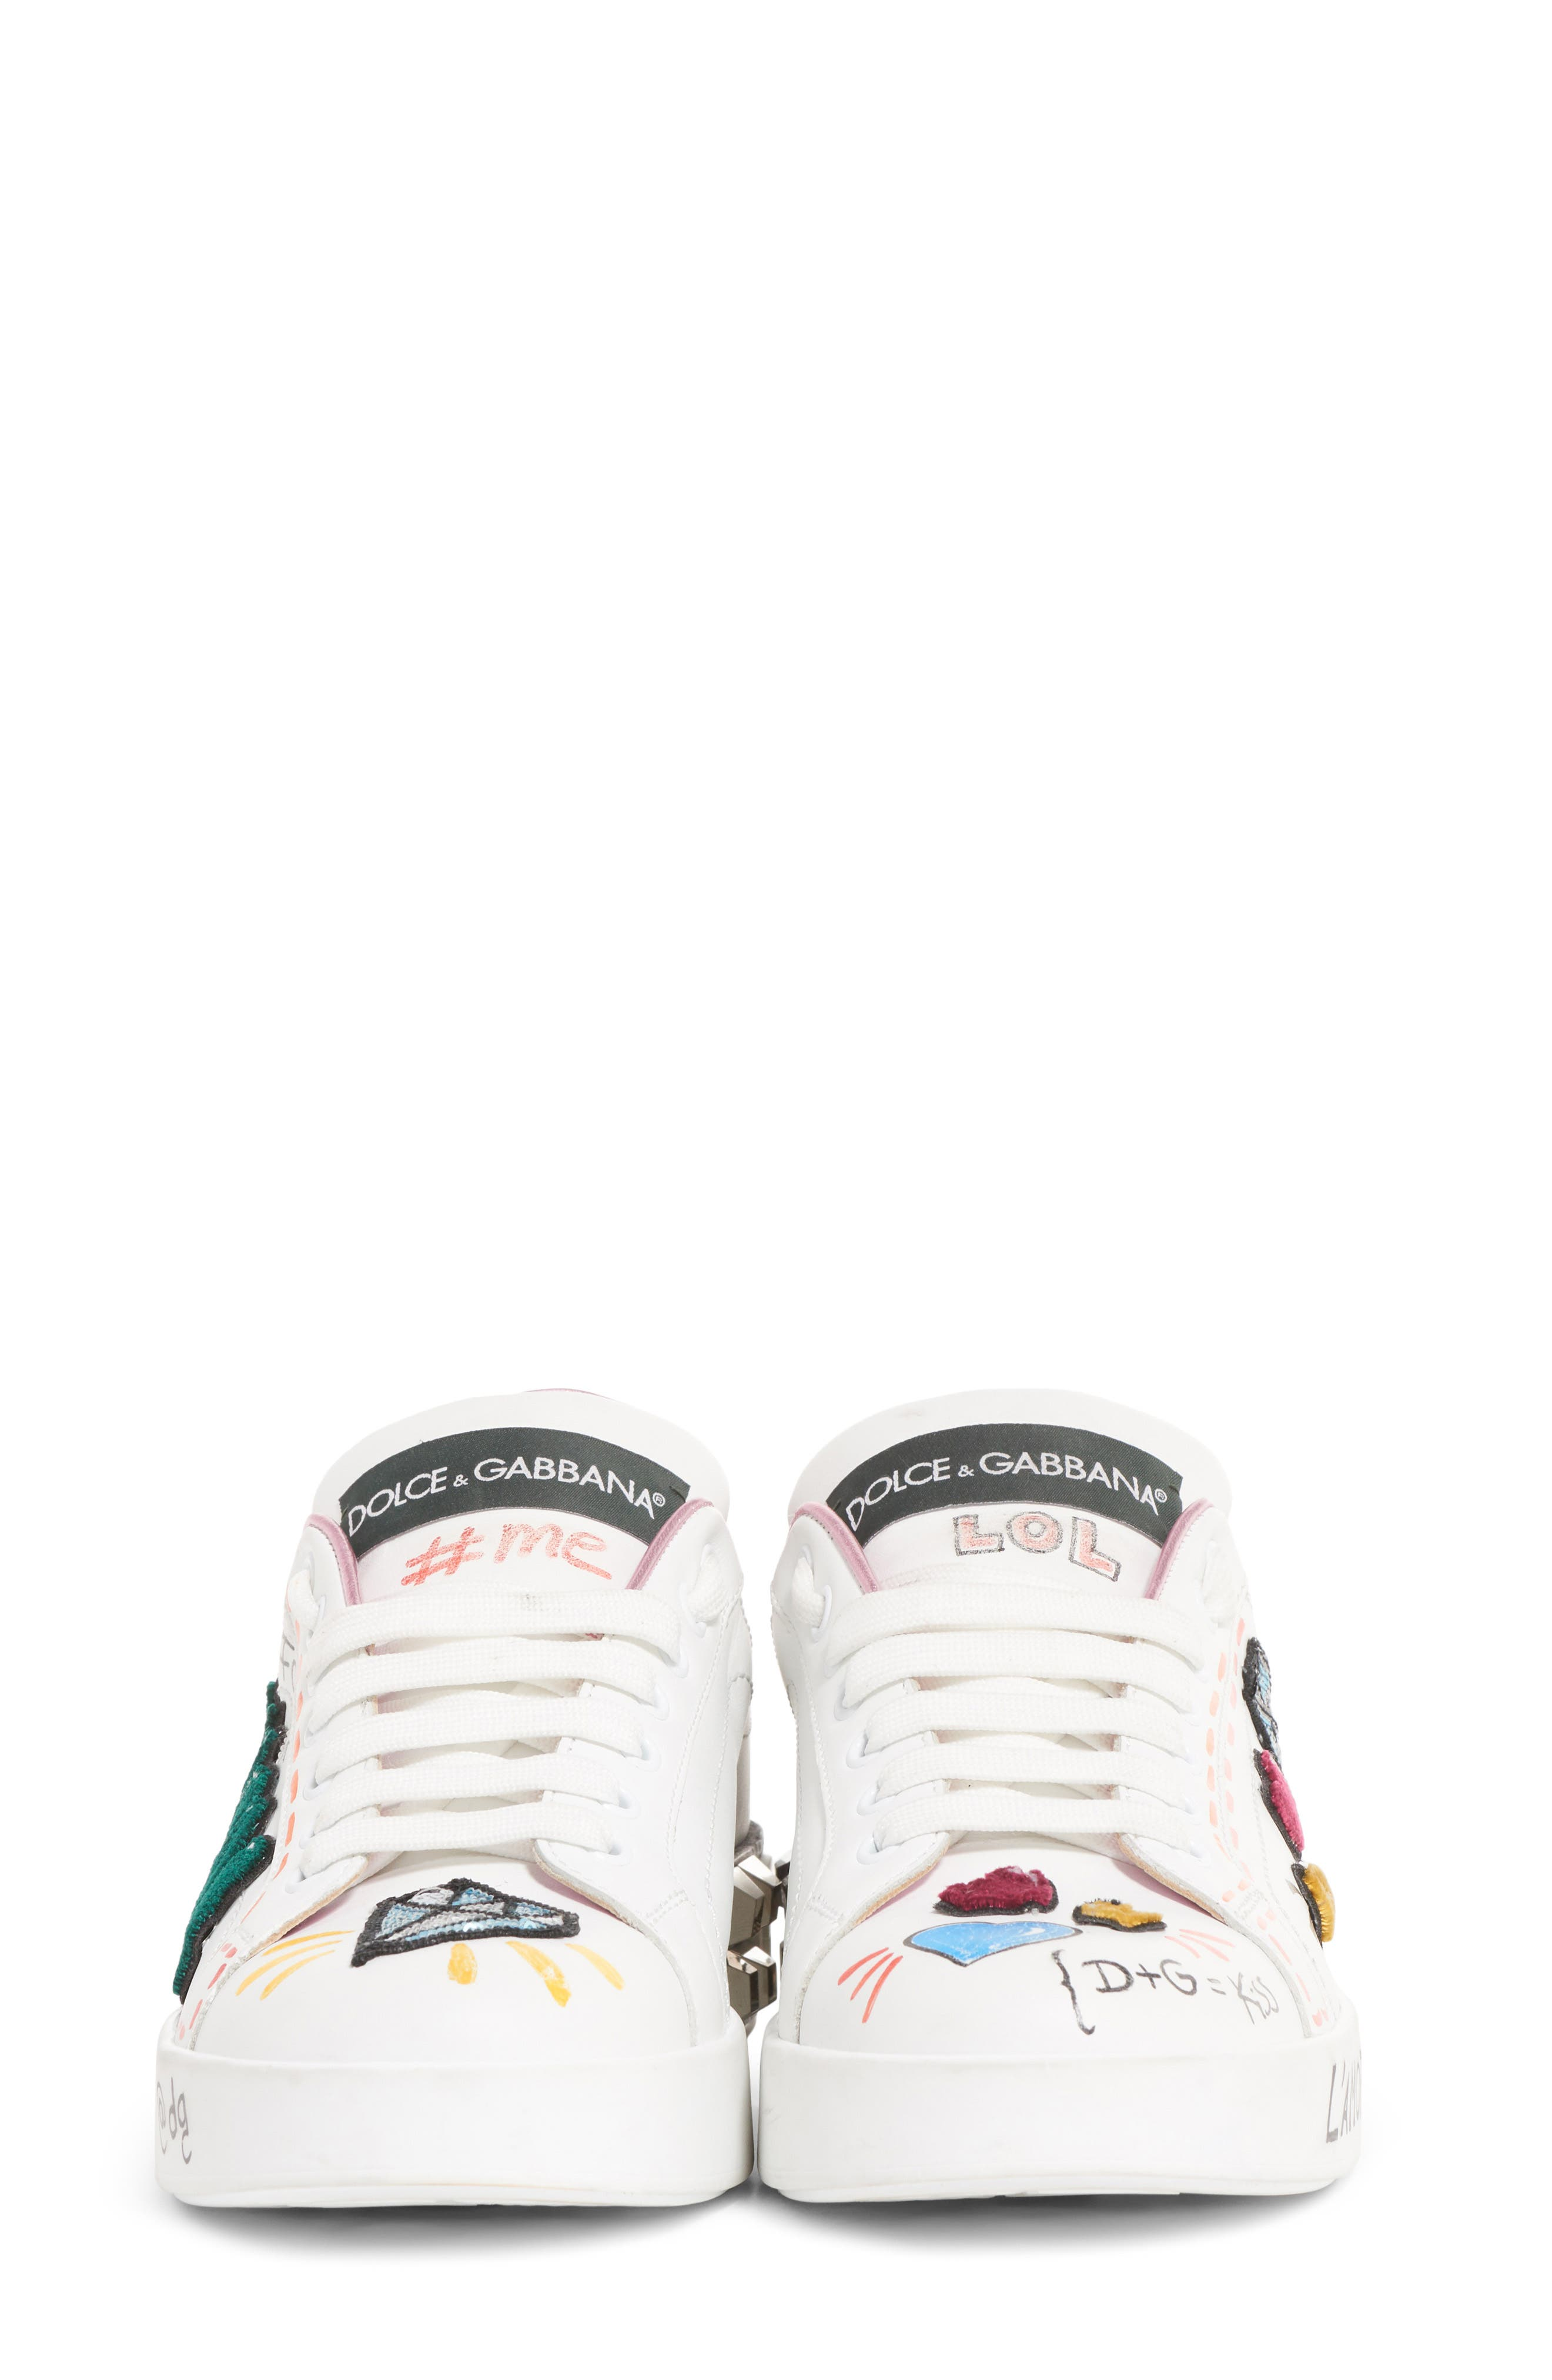 DOLCE&GABBANA, Queen Graffiti Lace-Up Sneaker, Alternate thumbnail 7, color, 110